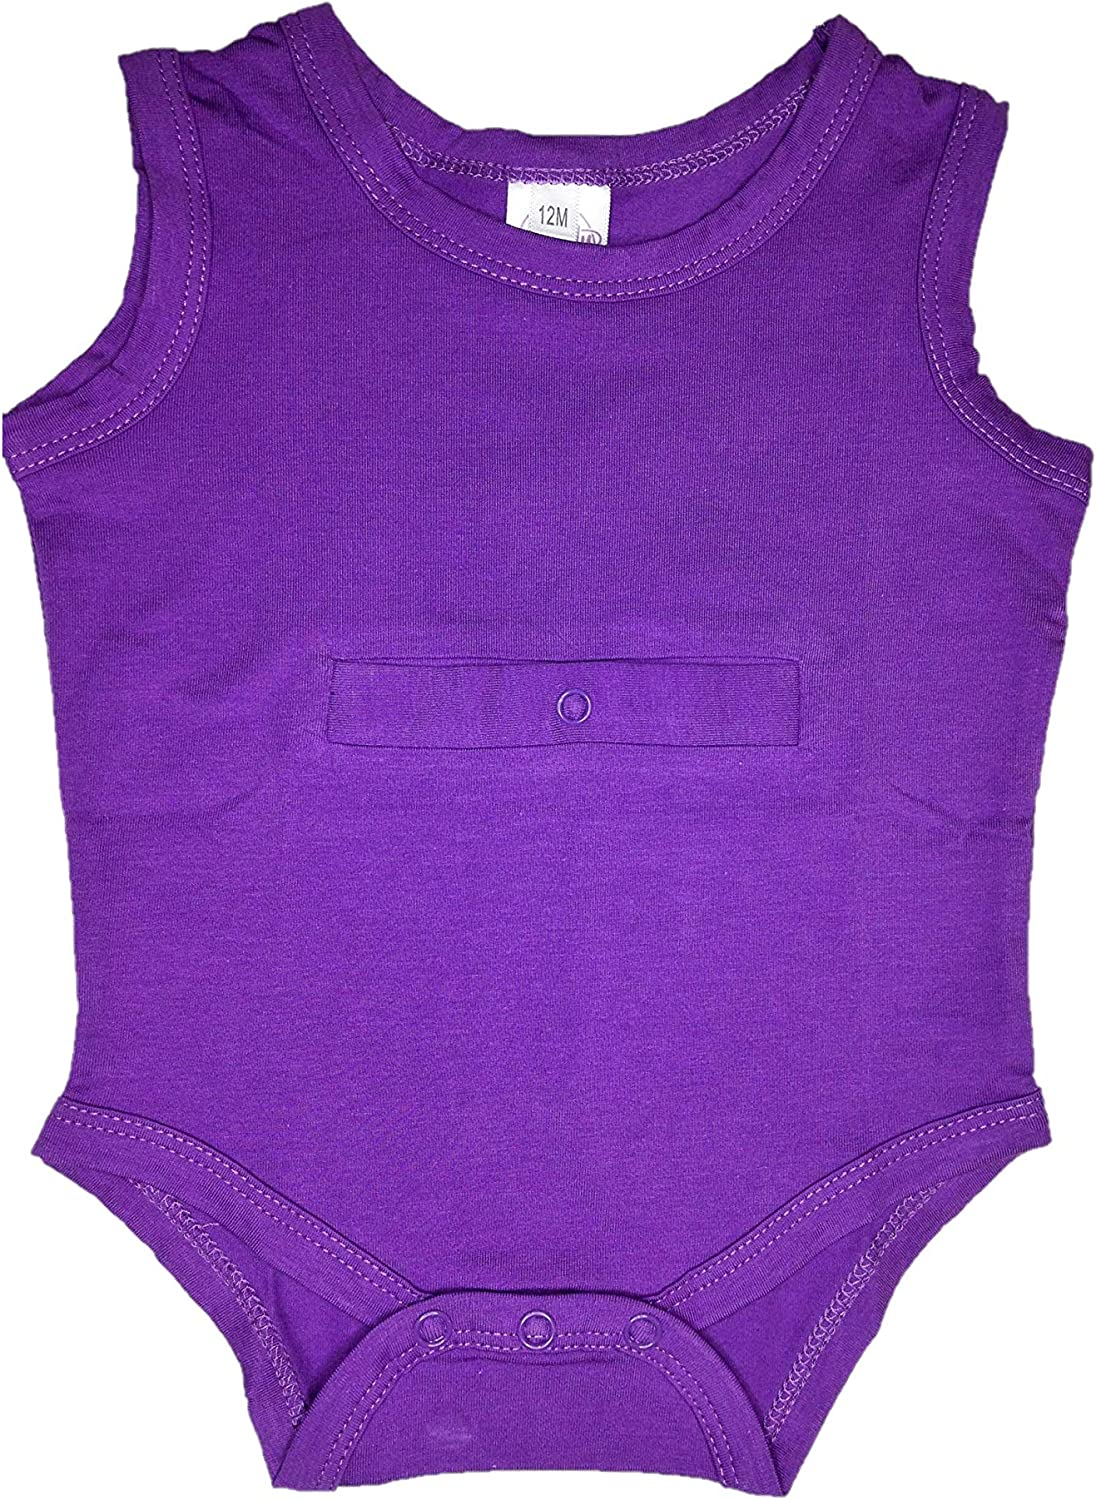 Handy Customized Products Bodysuit for Feeding Tube and G-Tube Special Needs Onsie